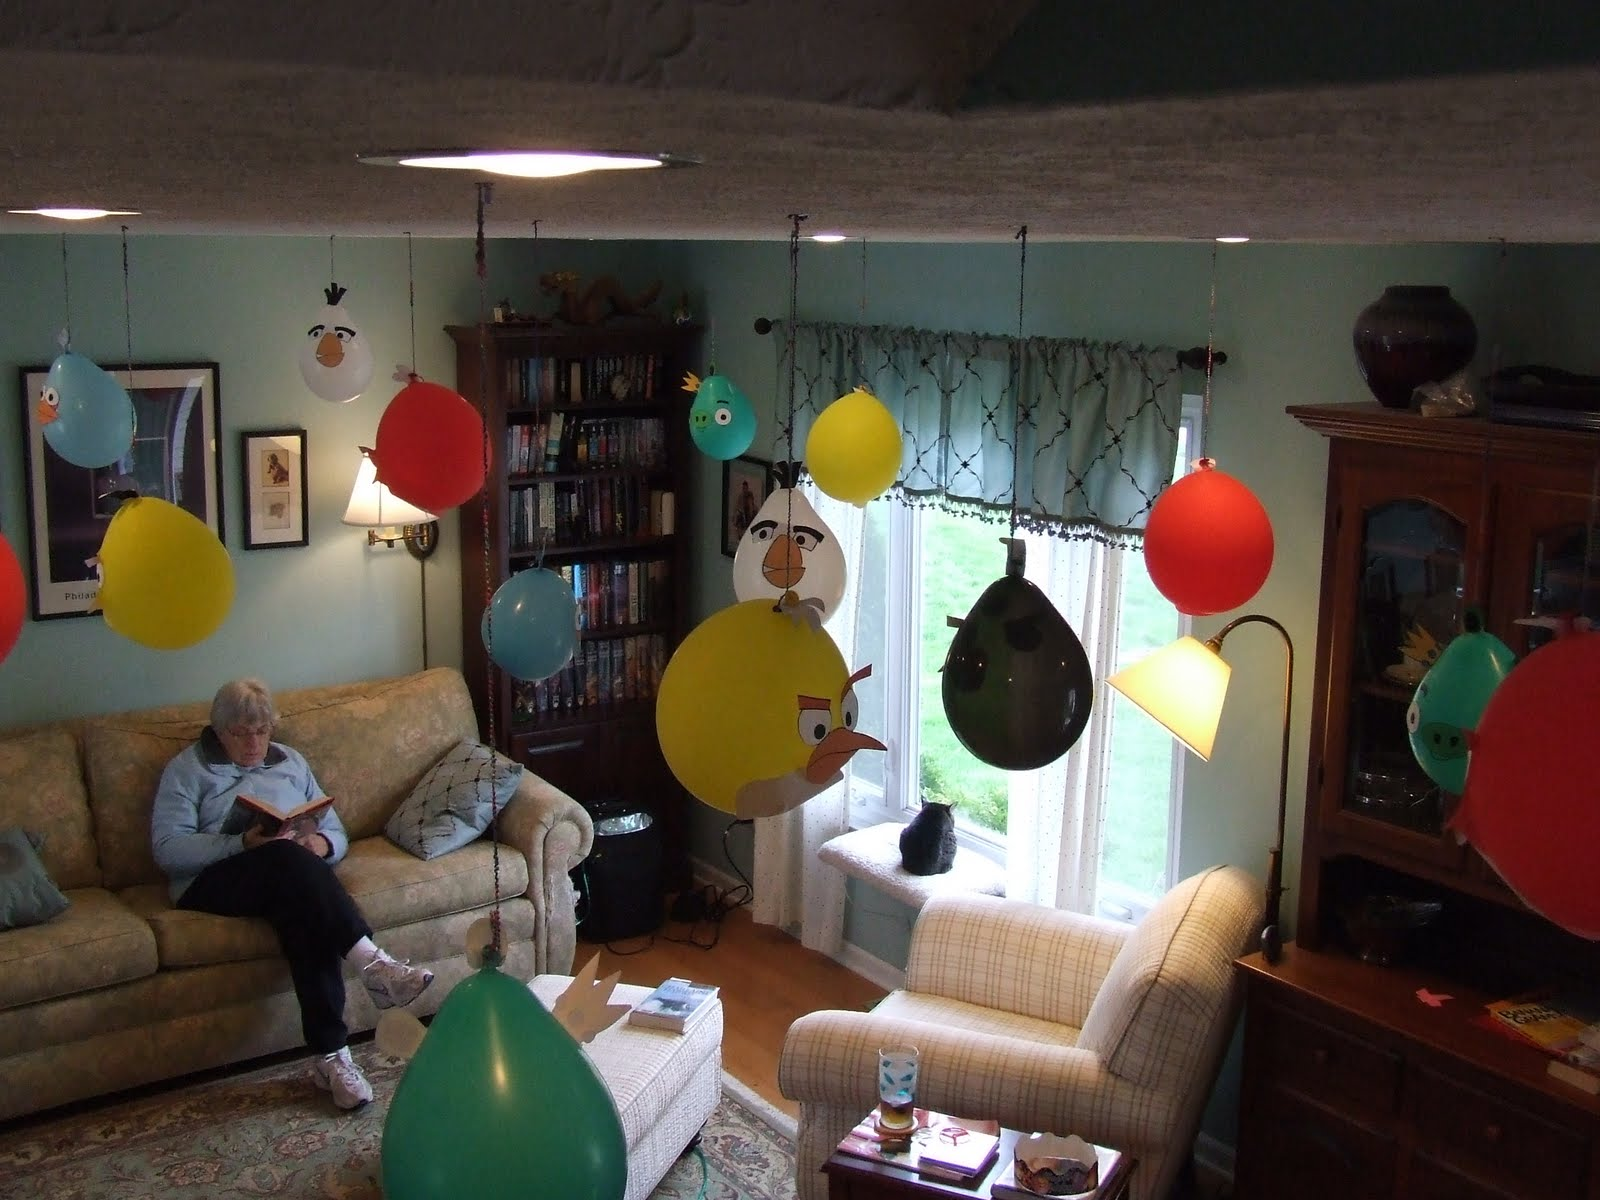 The balloons proved to be a big hit with the kids especially when i